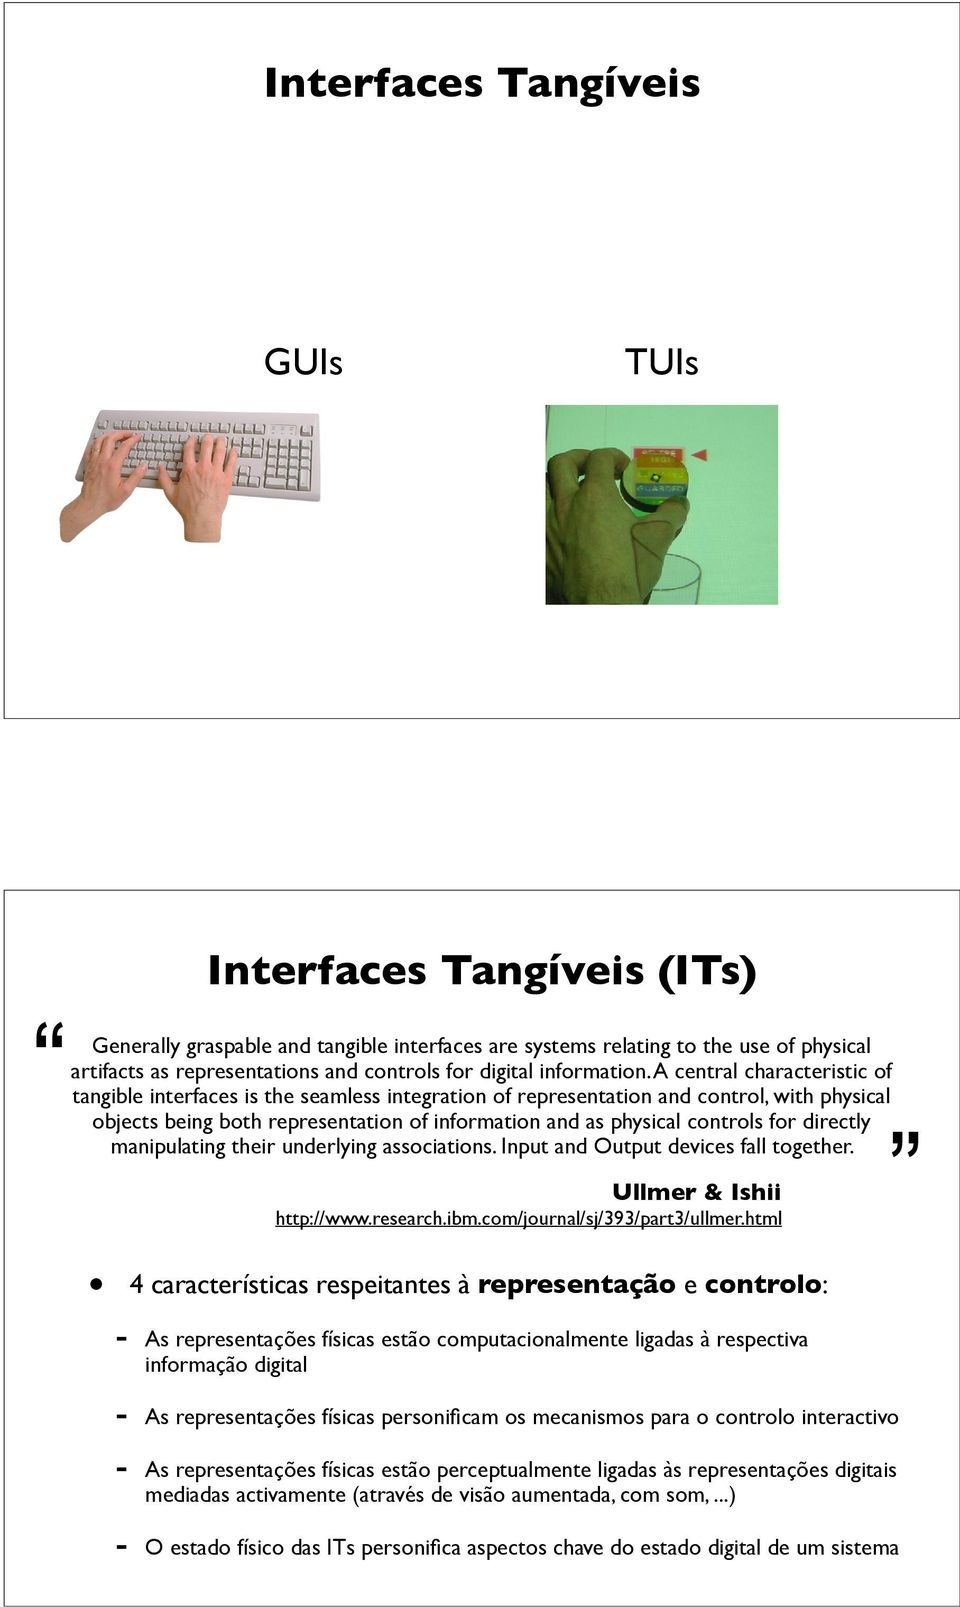 A central characteristic of tangible interfaces is the seamless integration of representation and control, with physical objects being both representation of information and as physical controls for